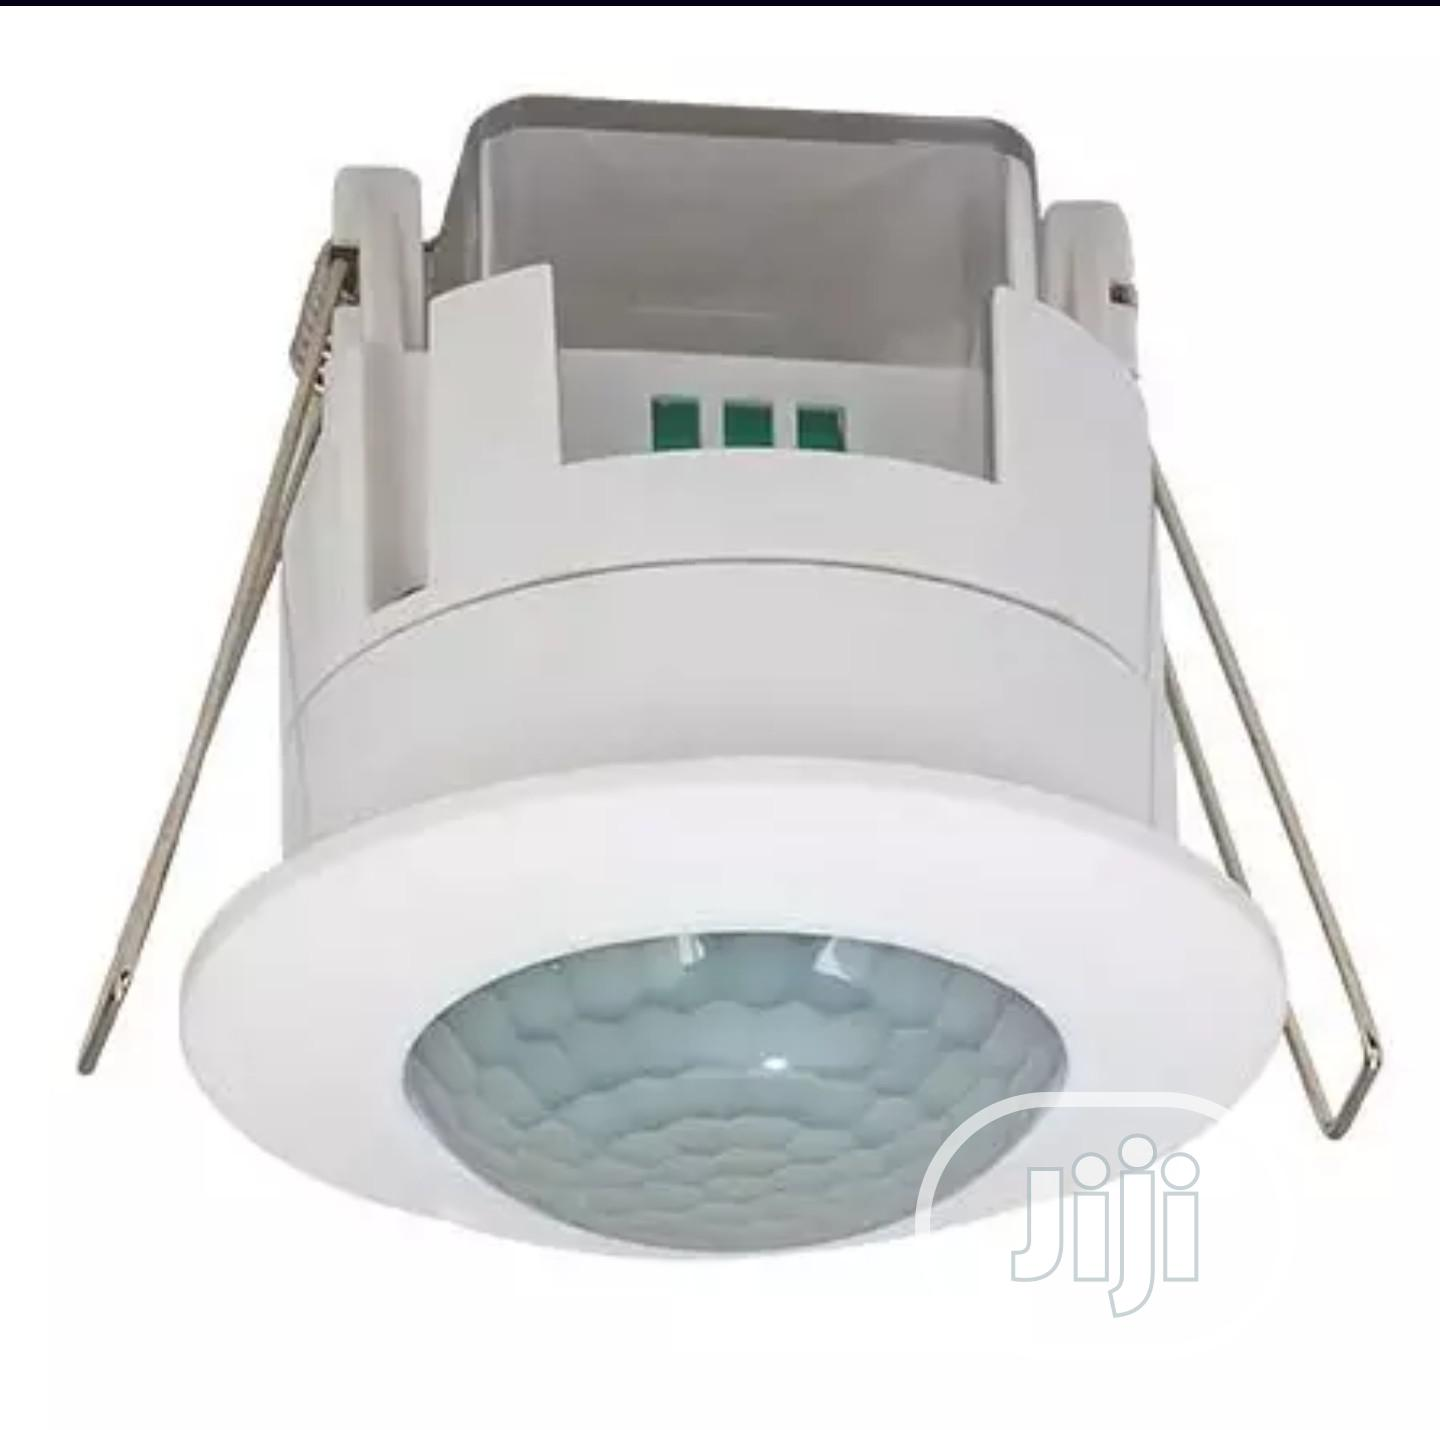 Ceiling Mount Pir Motion Sensor Switch In Lugbe District Electrical Equipment Kayode Olorunfemi Jiji Ng For Sale In Lugbe District Buy Electrical Equipment From Kayode Olorunfemi On Jiji Ng